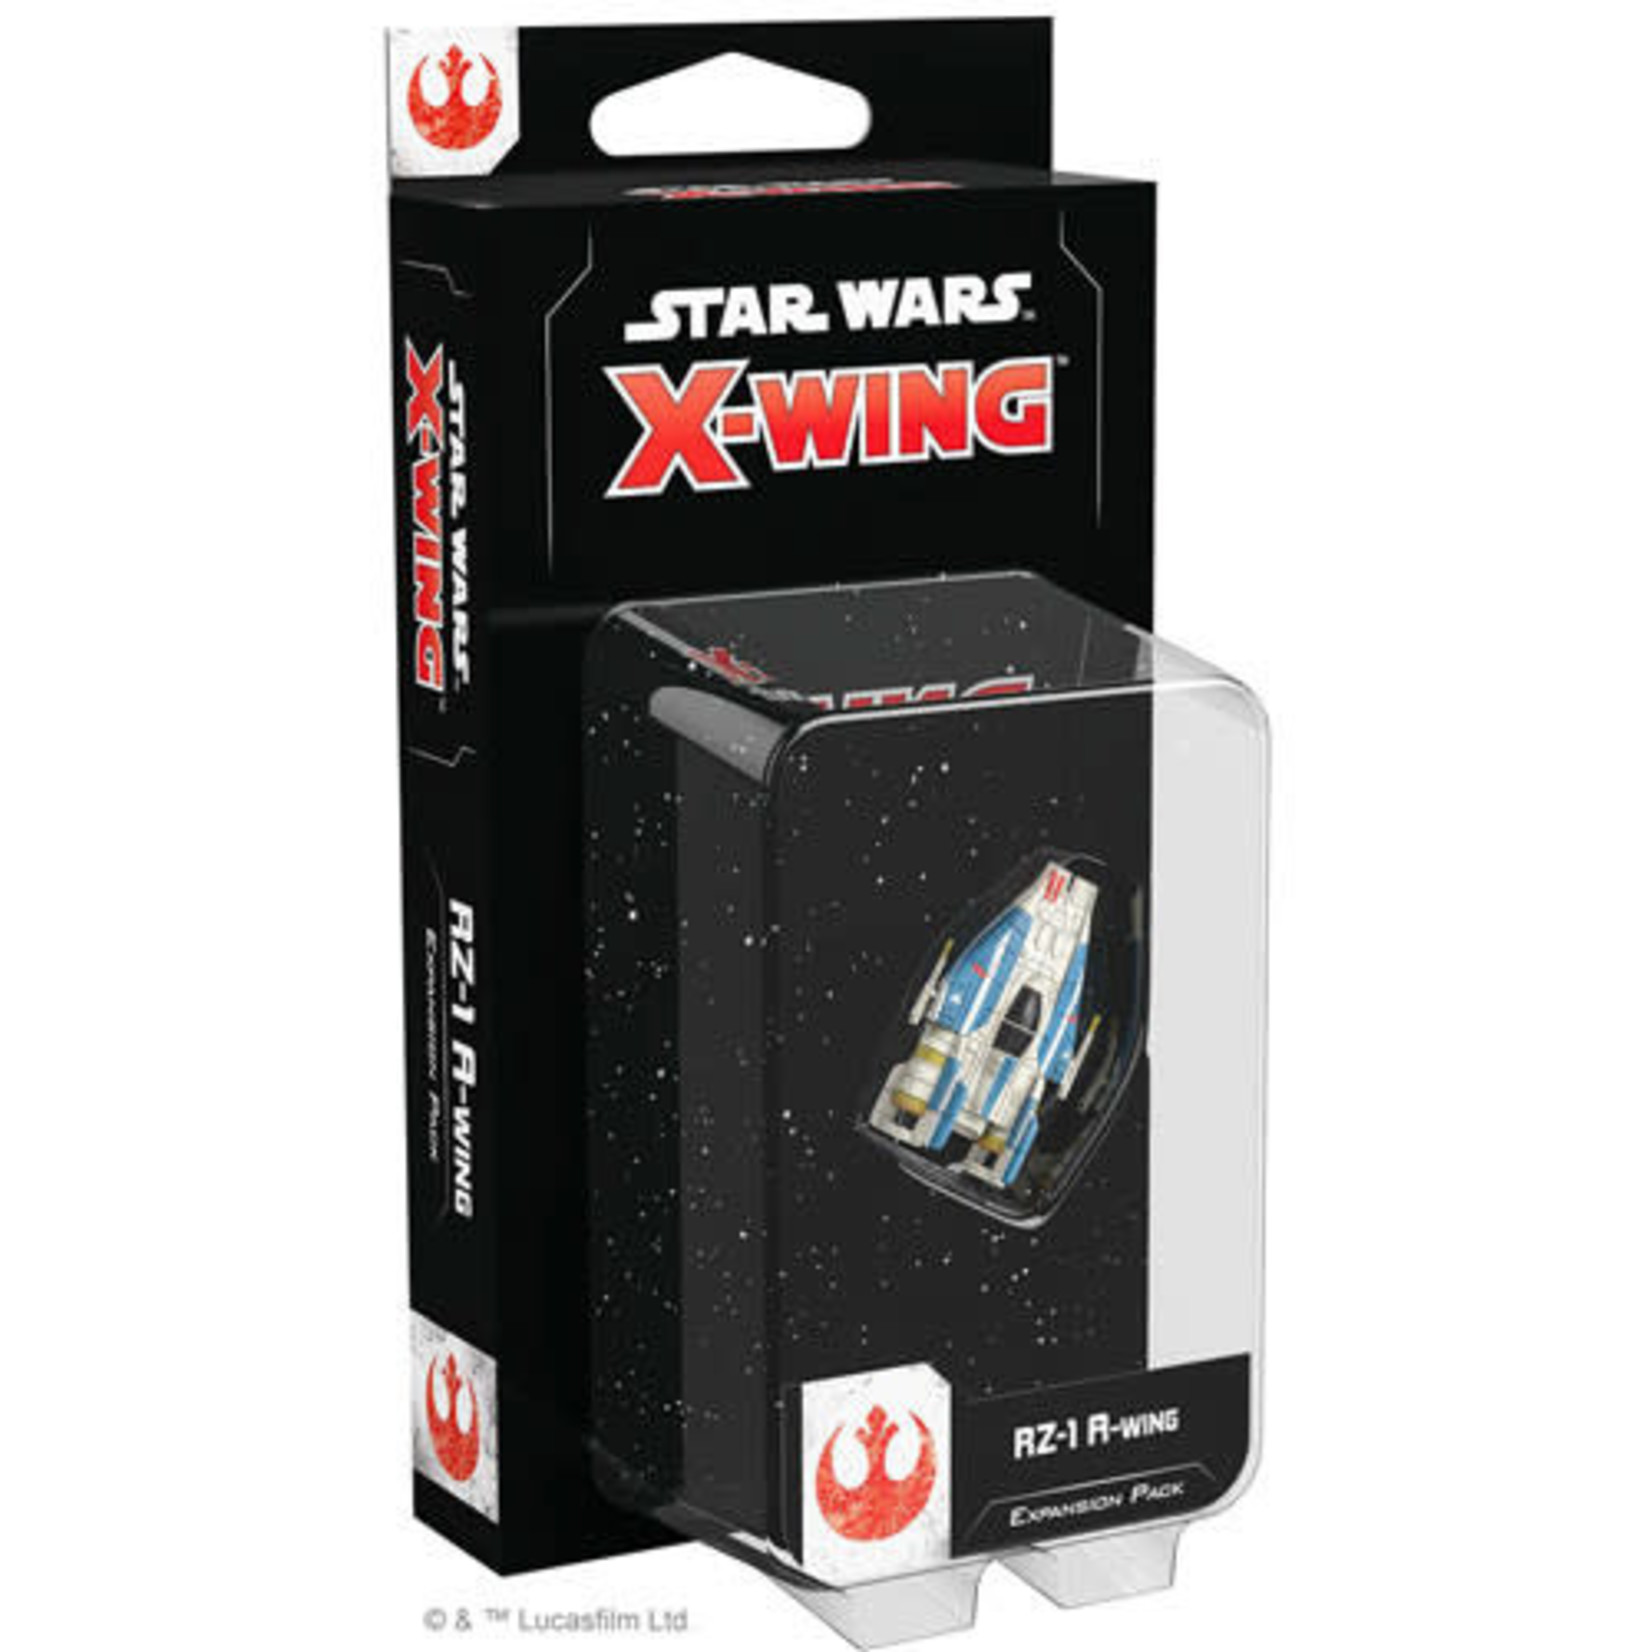 Star Wars X-Wing 2e: RZ 1 A Wing Expansion Pack